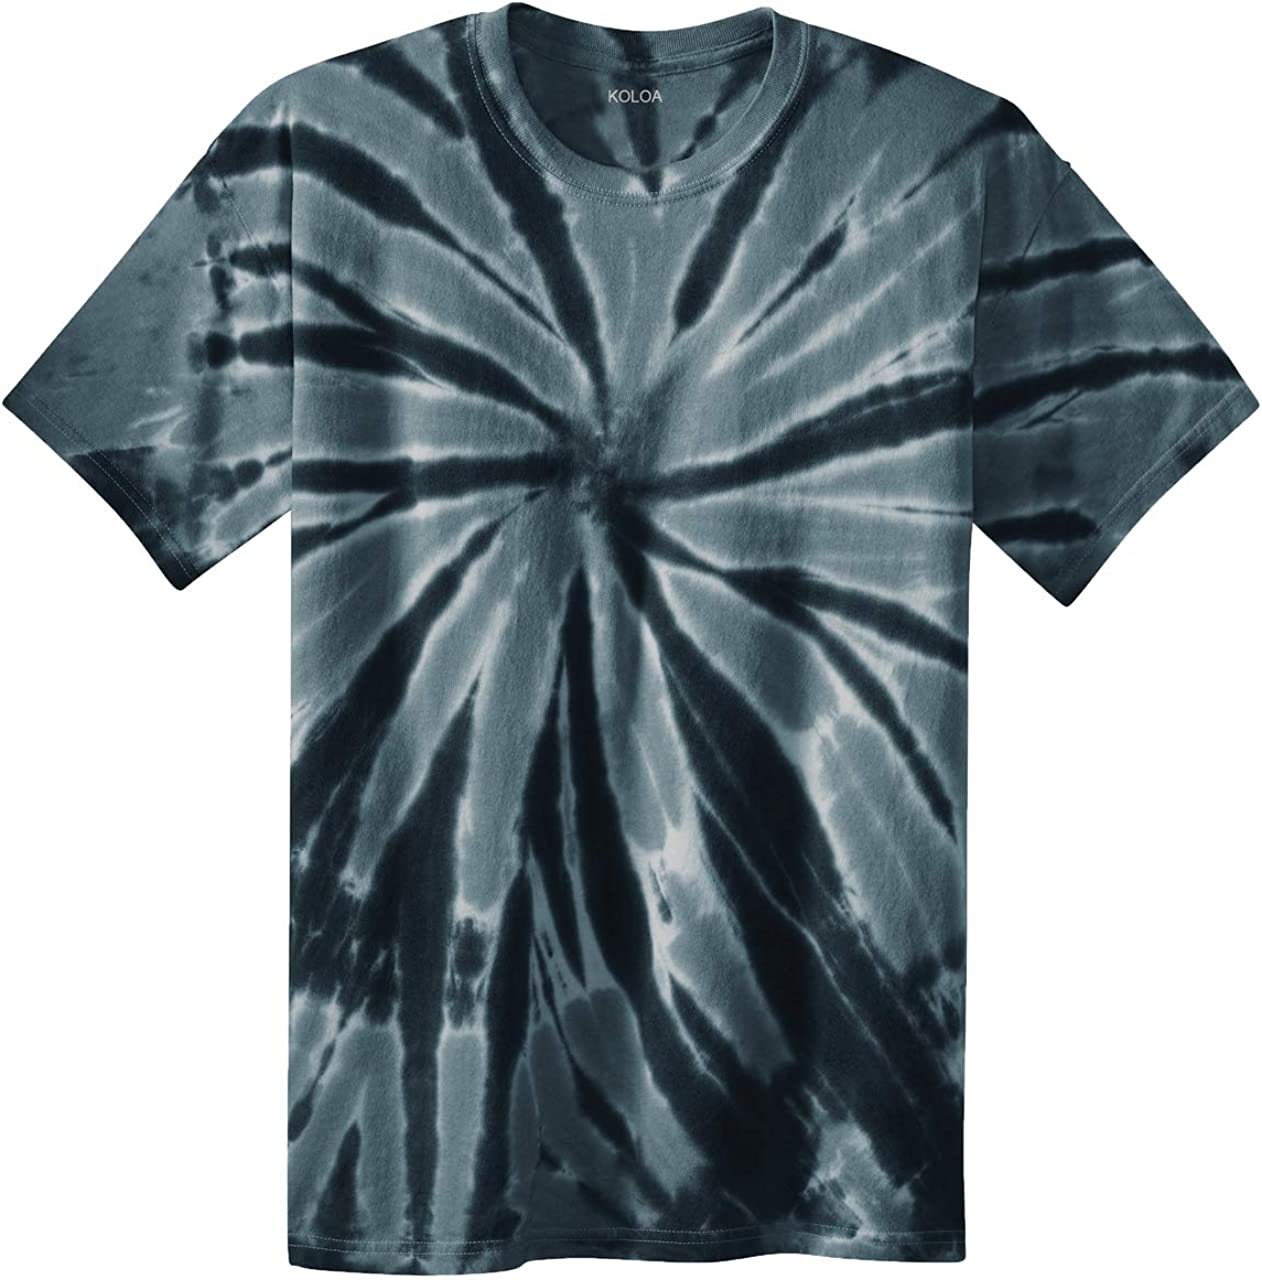 Sizes Joes USA Koloa Surf Co Colorful Tie-Dye T-Shirts in 17 Colors S-4XL